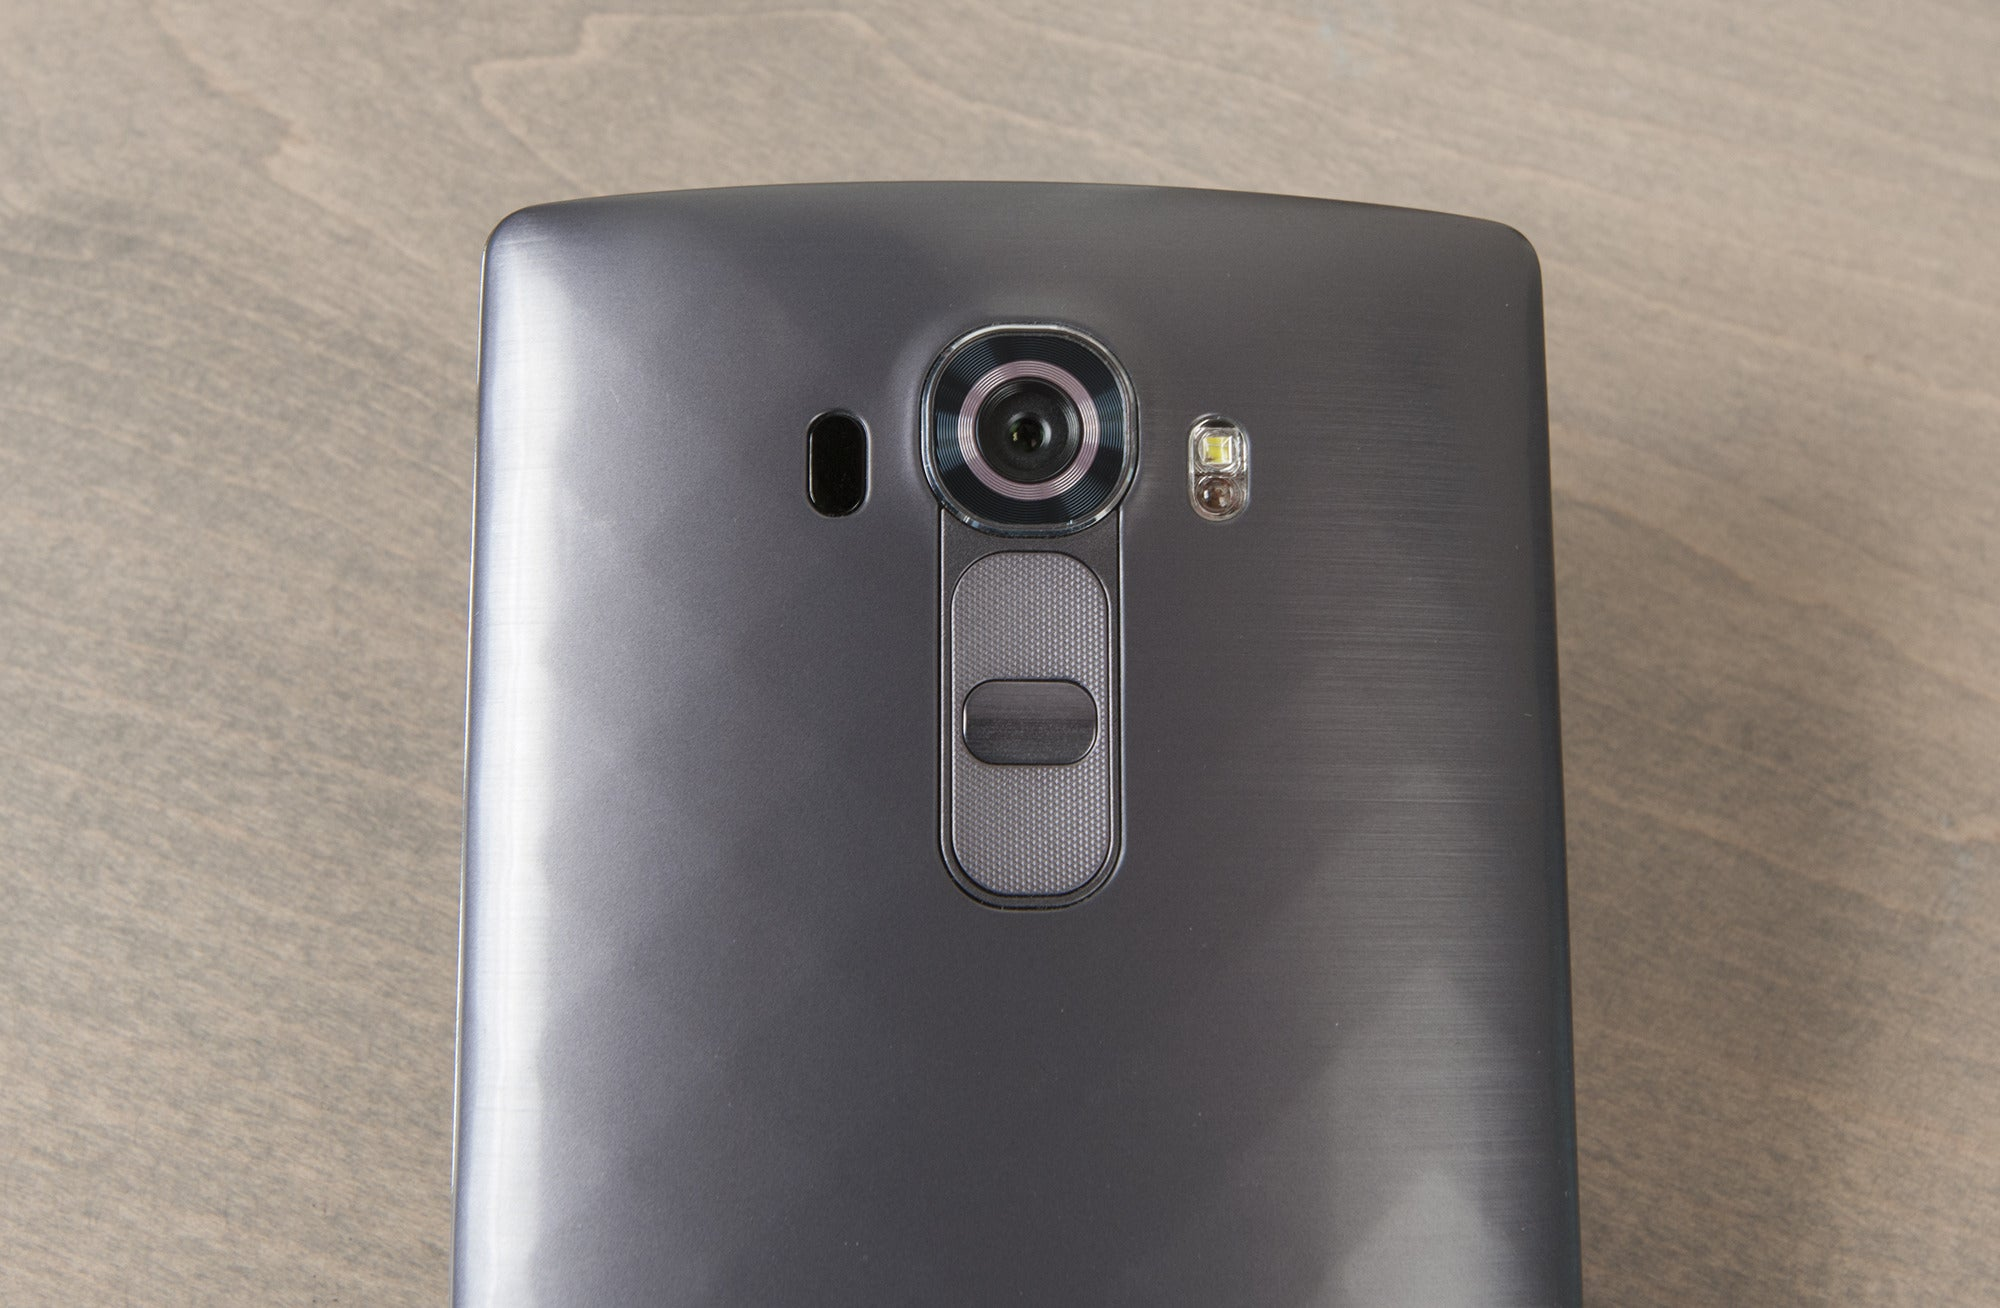 Lg G4 Review Killer Camera Display But Not A Revolutionary Tiny Efficient High Power Led Flash Solutions For Cell Phone 2